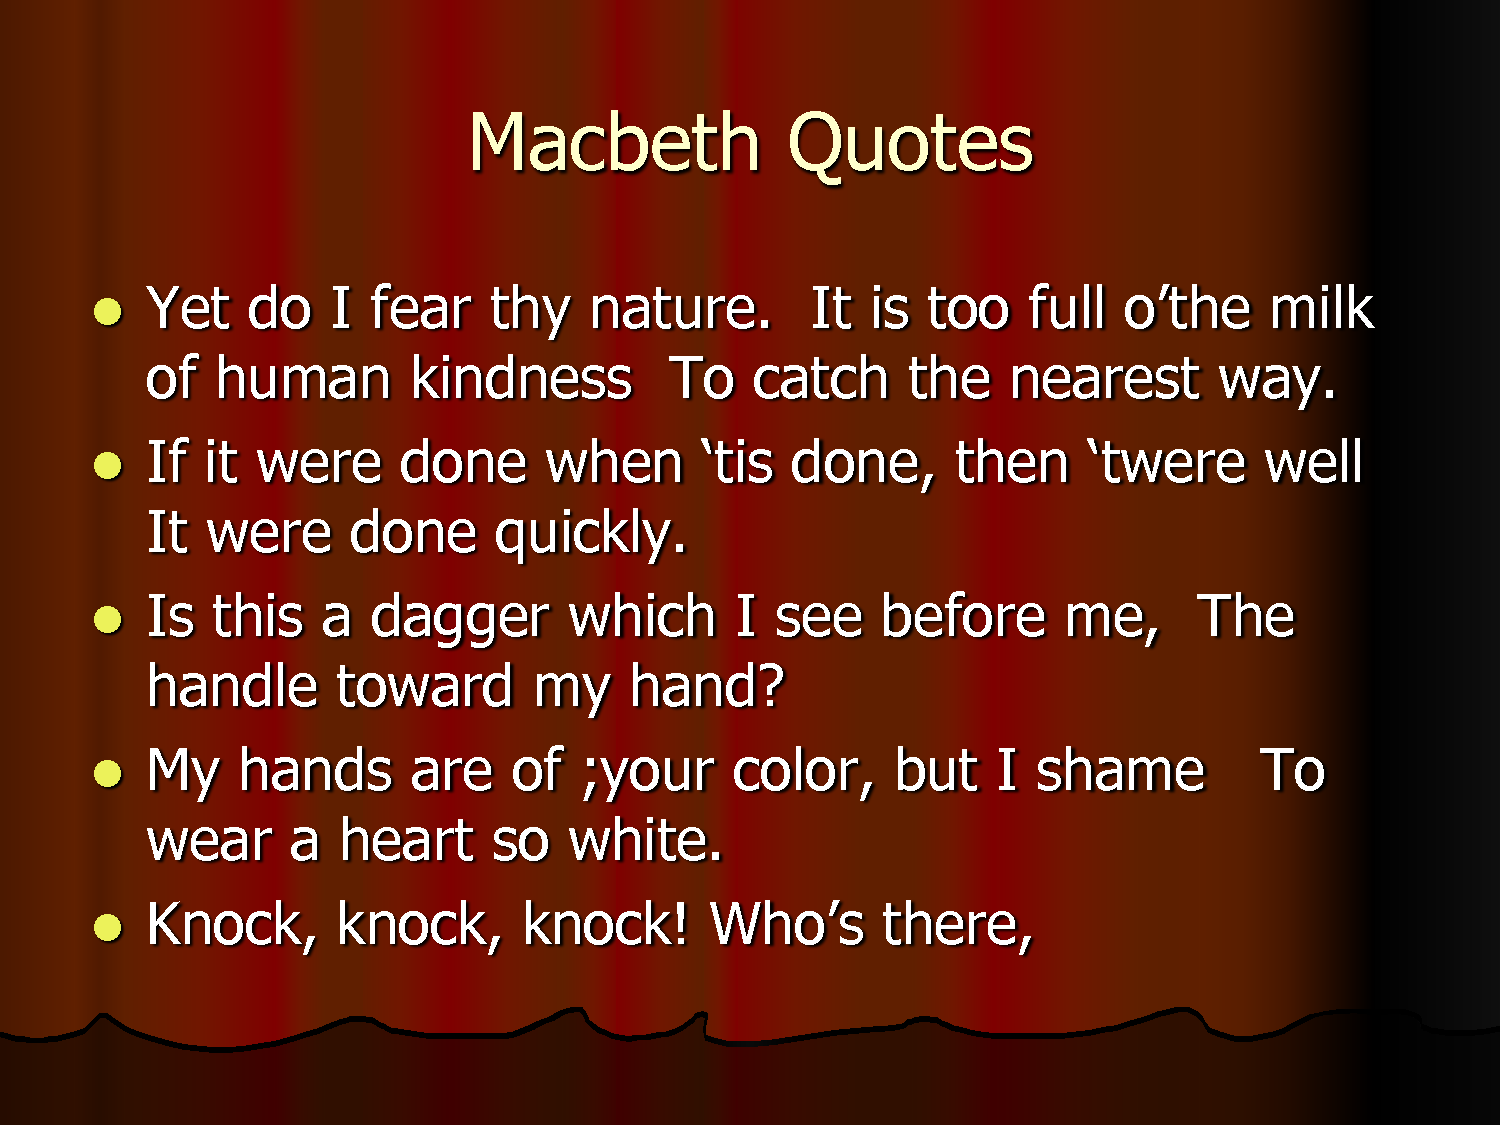 an analysis of human nature in macbeth by william shakespeare ♦ lady macbeth (character analysis) macbeth: william shakespeare biography shakespeare understood human nature.